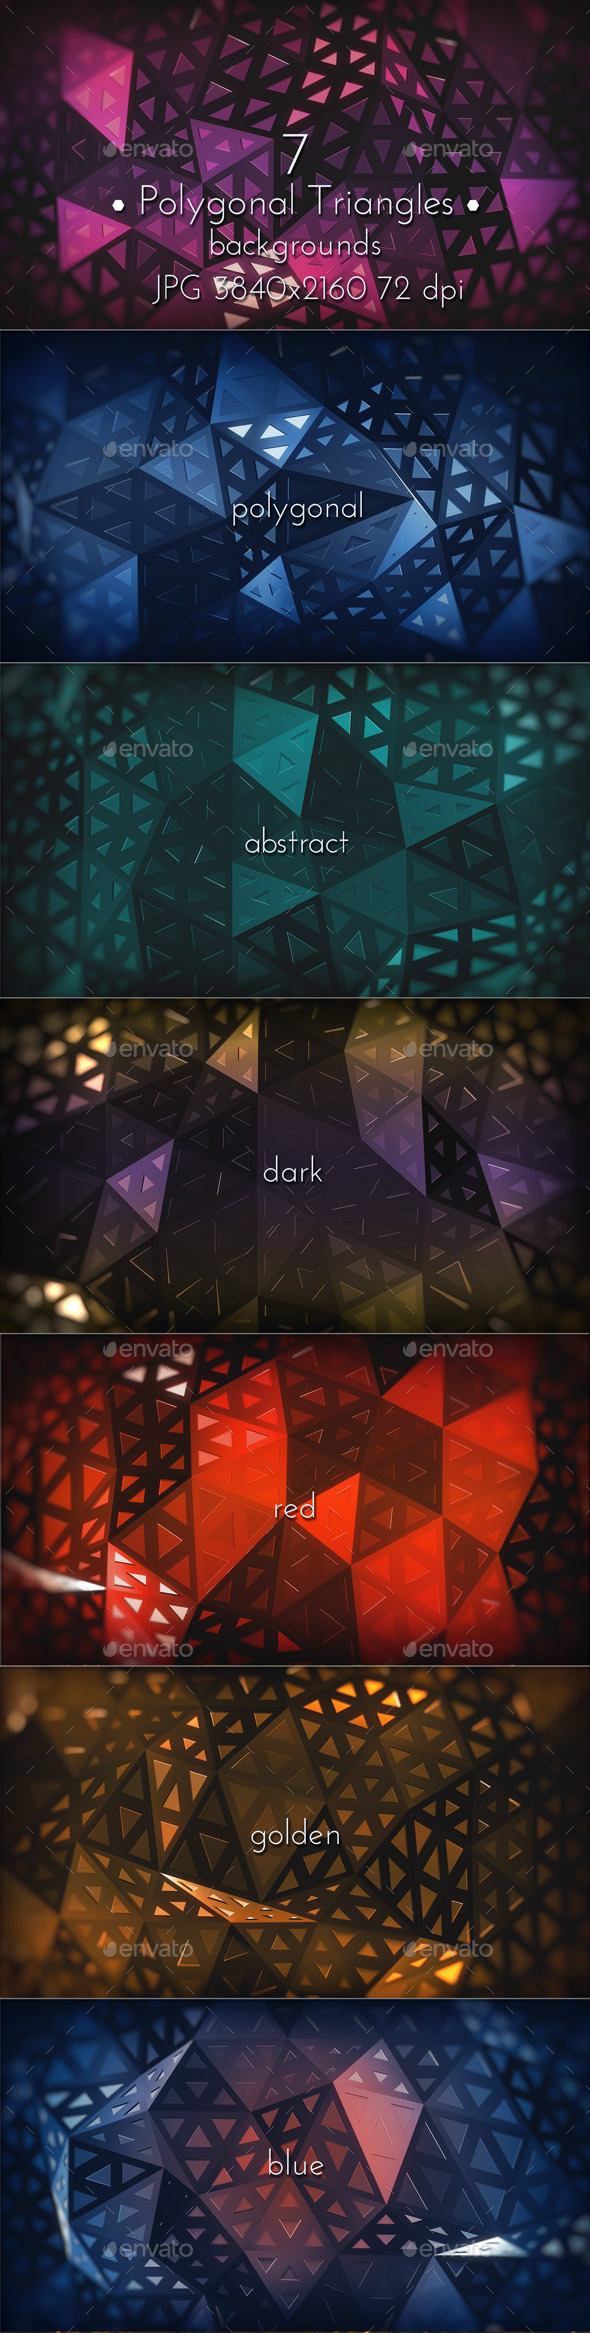 GraphicRiver Polygonal Triangles Background 11610020